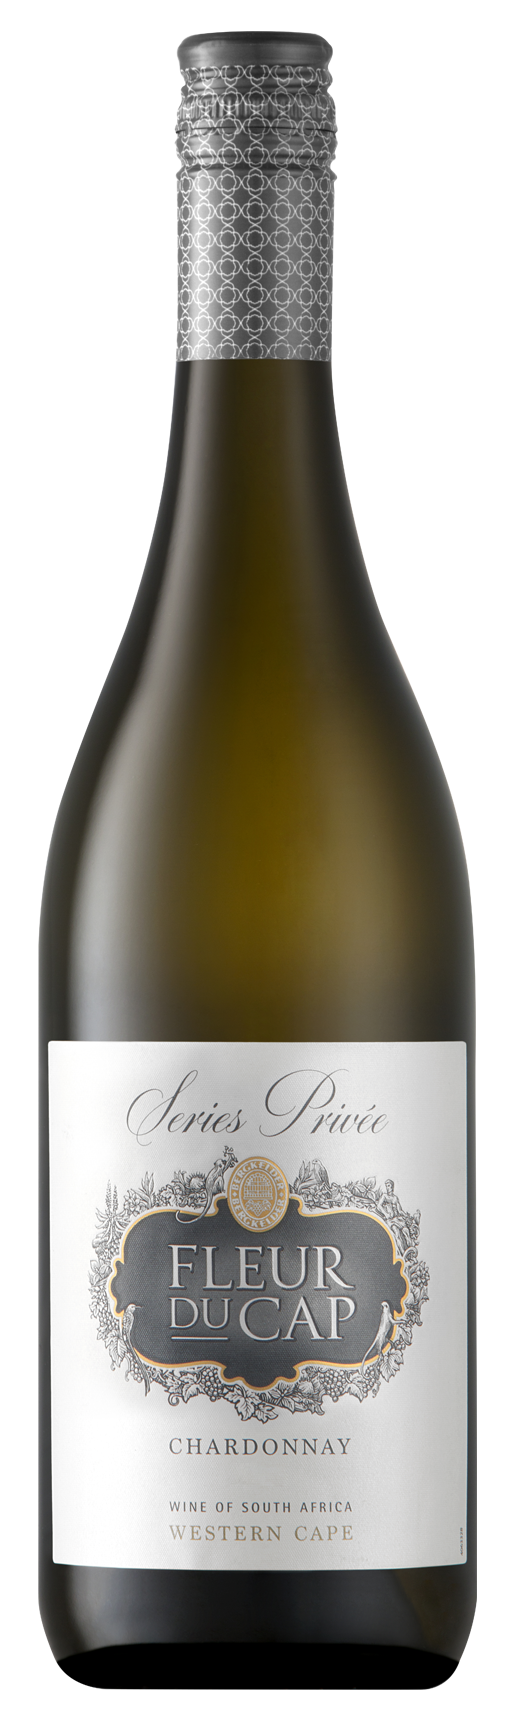 The Series Privée range Series Privée Chardonnay